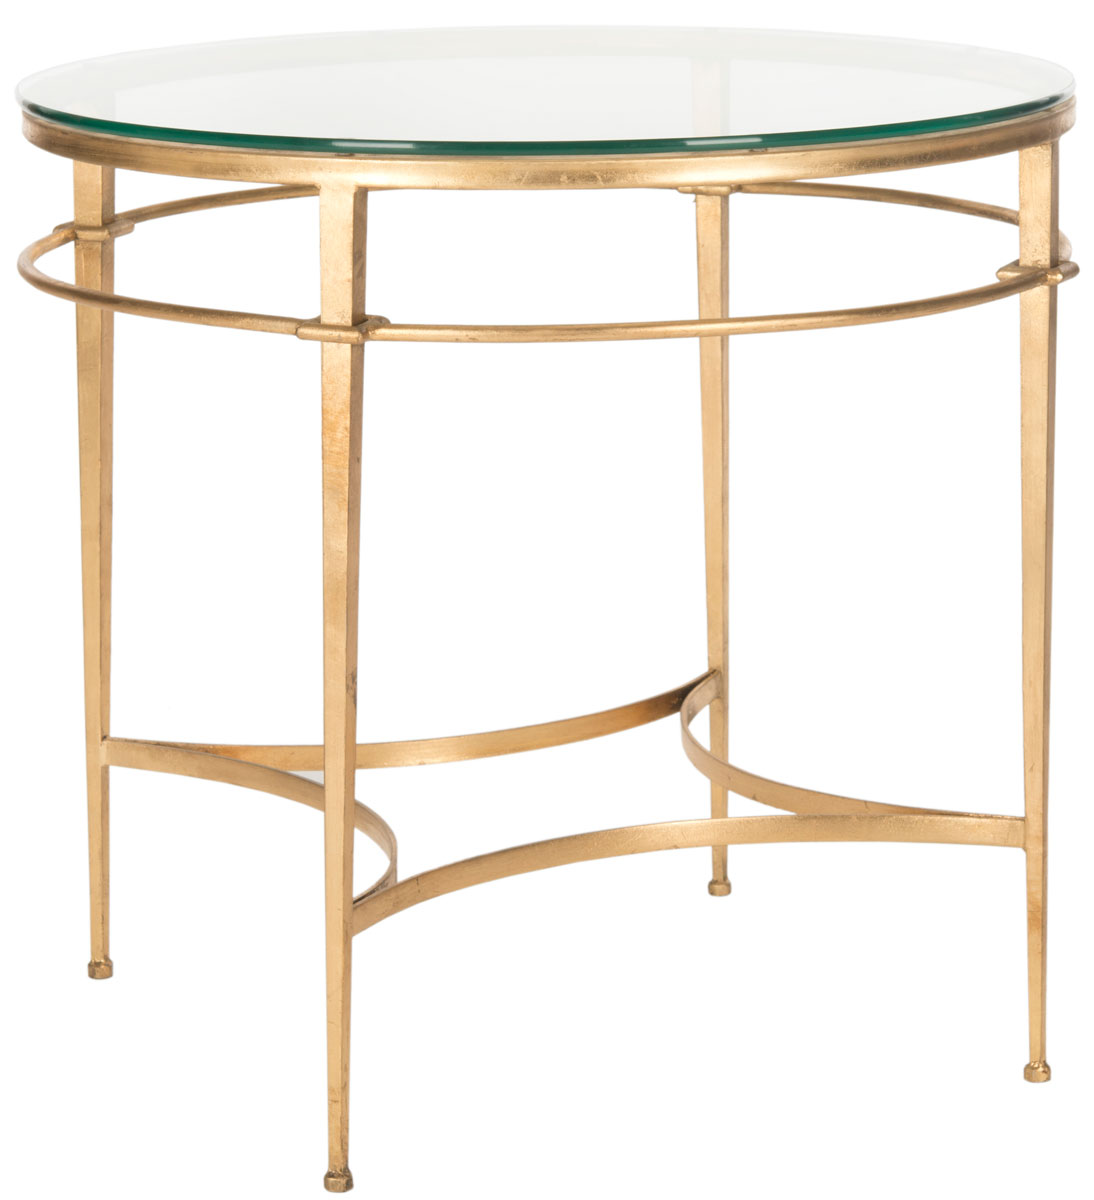 safavieh couture glass top round accent table side gold with small sofa lamps furniture showrooms bangalore pink metal adidas wrestling shoes bedside cabinets green lamp little